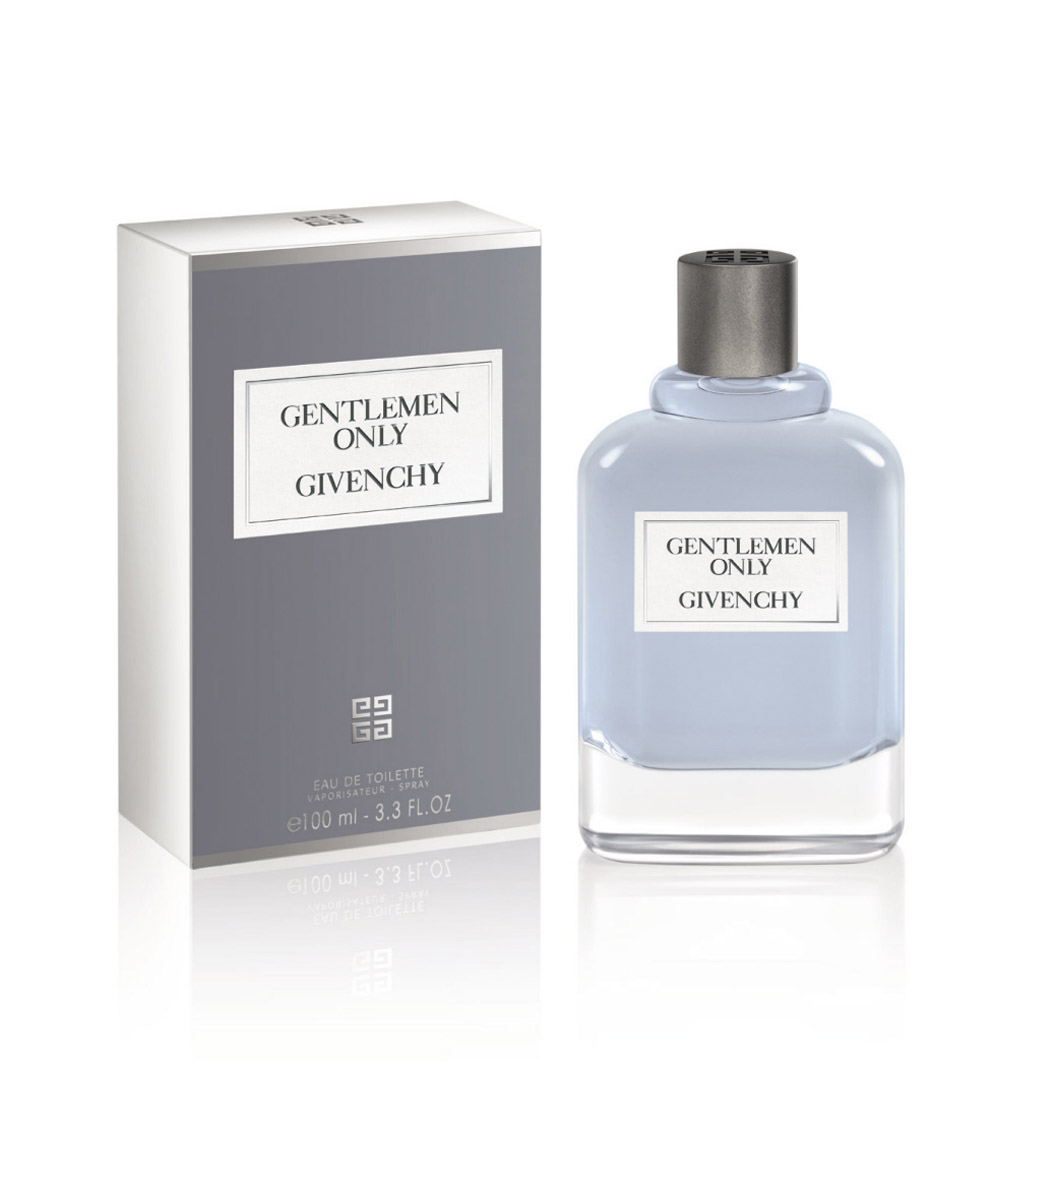 Туалетная вода Givenchy Givenchy Gentlemen Only 100ml тестер